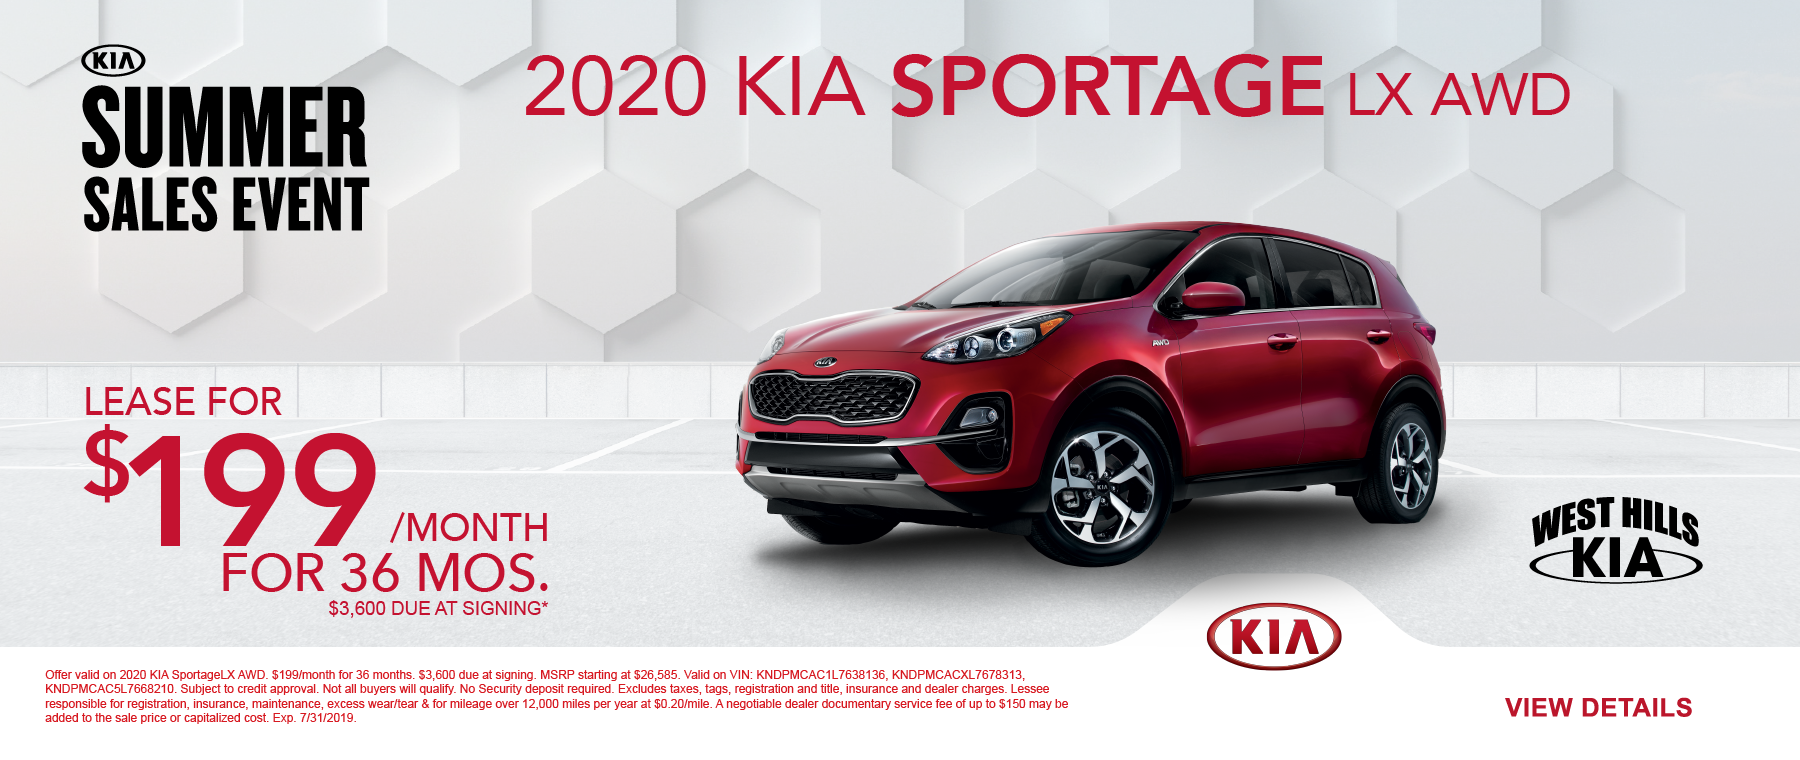 2020 KIA Sportage LX AWD  $199/month for 36 months  $3,600 Due at Signing   Offer valid on 2020 KIA SportageLX AWD. $199/month for 36 months. $3,600 due at signing. MSRP starting at $26,585. Valid on VIN: KNDPMCAC1L7638136, KNDPMCACXL7678313, KNDPMCAC5L7668210. Subject to credit approval. Not all buyers will qualify. No Security deposit required. Excludes taxes, tags, registration and title, insurance and dealer charges. Lessee responsible for registration, insurance, maintenance, excess wear/tear & for mileage over 12,000 miles per year at $0.20/mile. A negotiable dealer documentary service fee of up to $150 may be added to the sale price or capitalized cost. Exp. 7/31/2019.